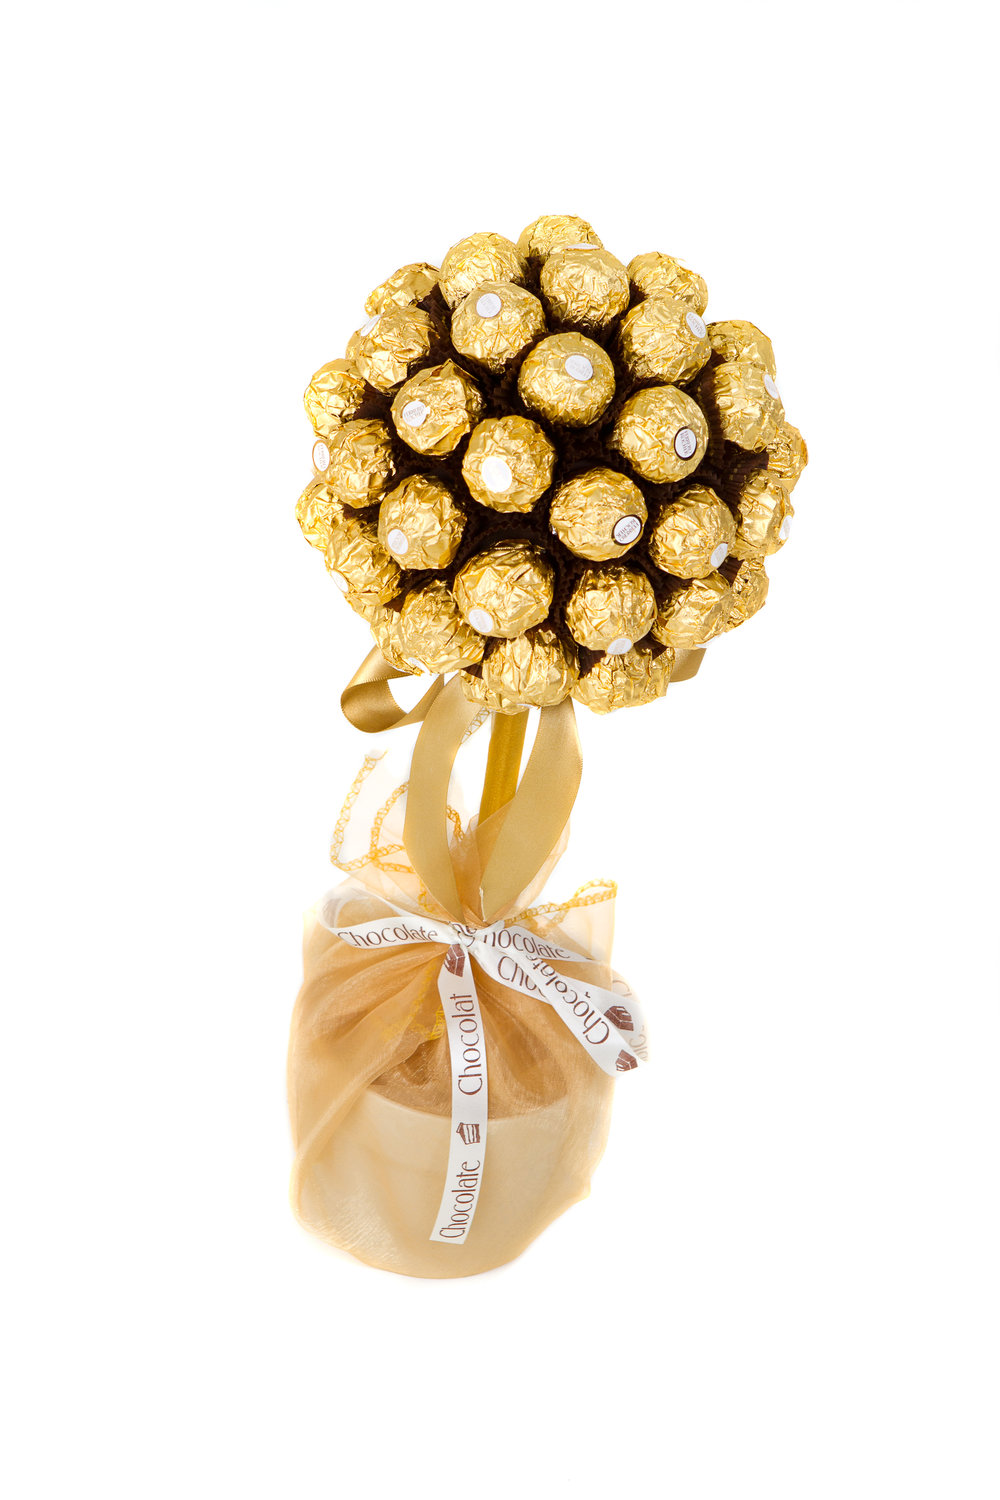 Ferrero Rocher Tree.jpg